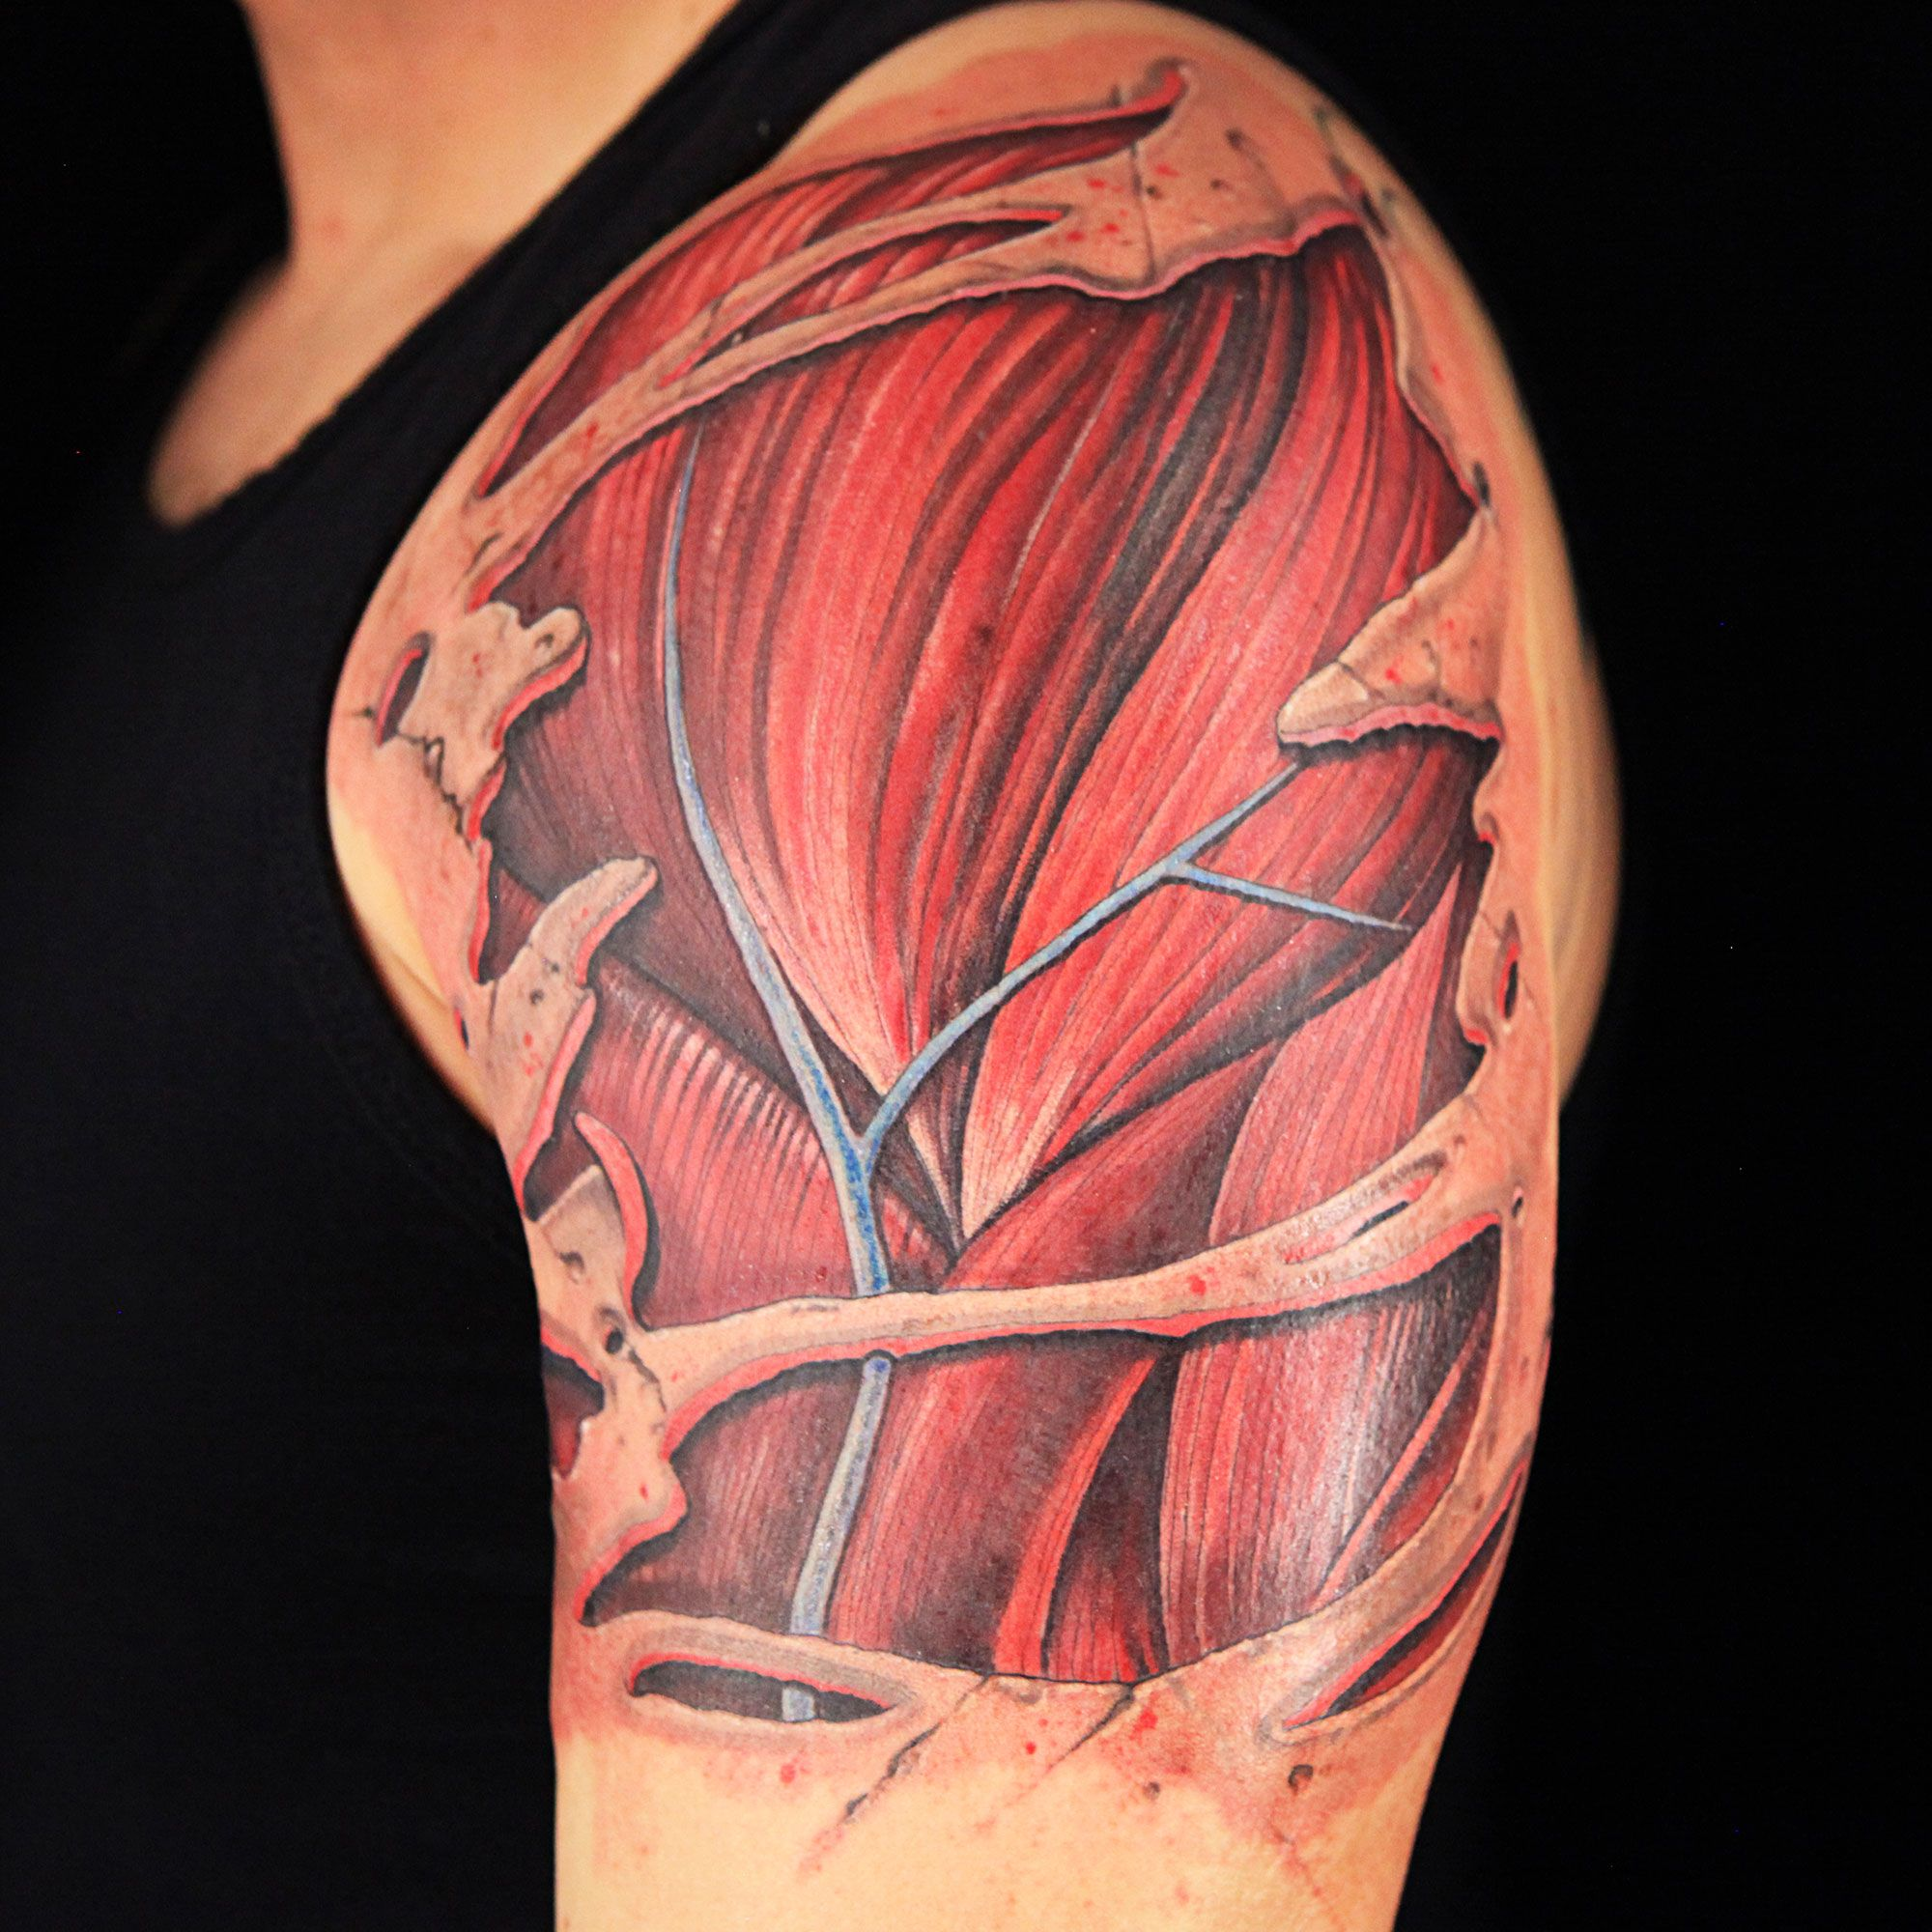 Realistic Medical Anatomical Tattoo by Craig Foster (With